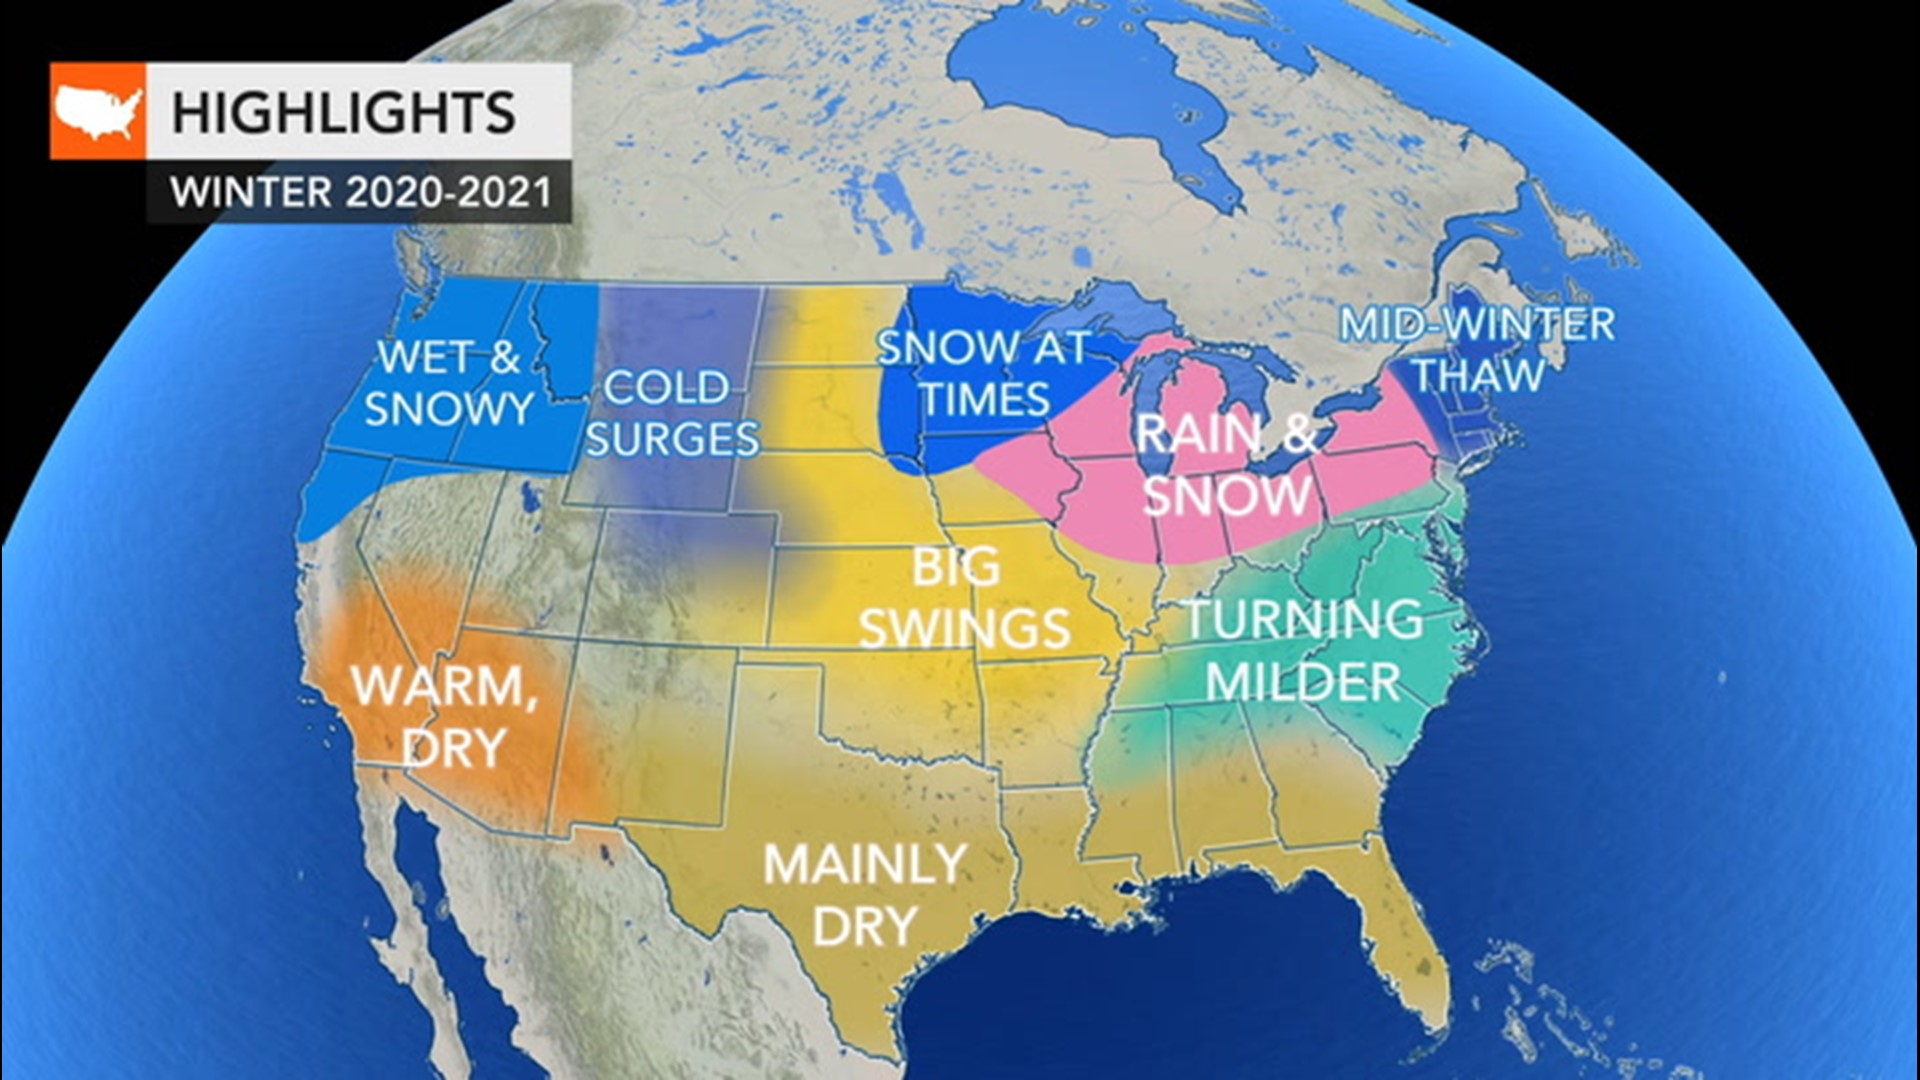 Weather Over Christmas 2020 Winter is coming; here's the winter weather forecast for around